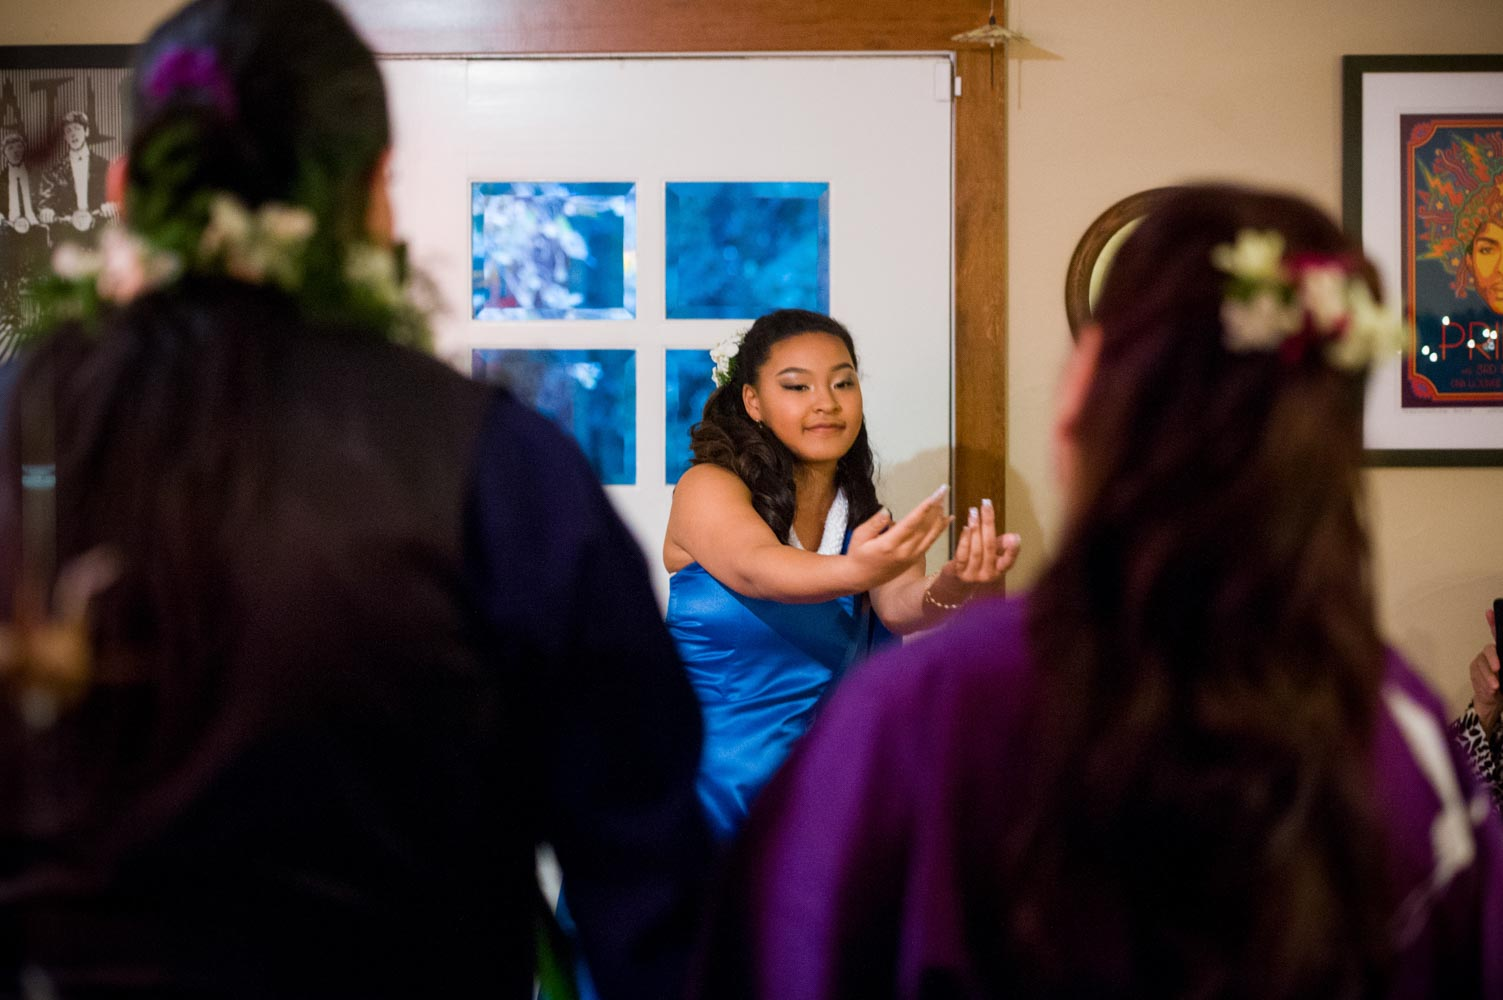 Girl, facing forward, performs hula dance as seen from behind observing couple